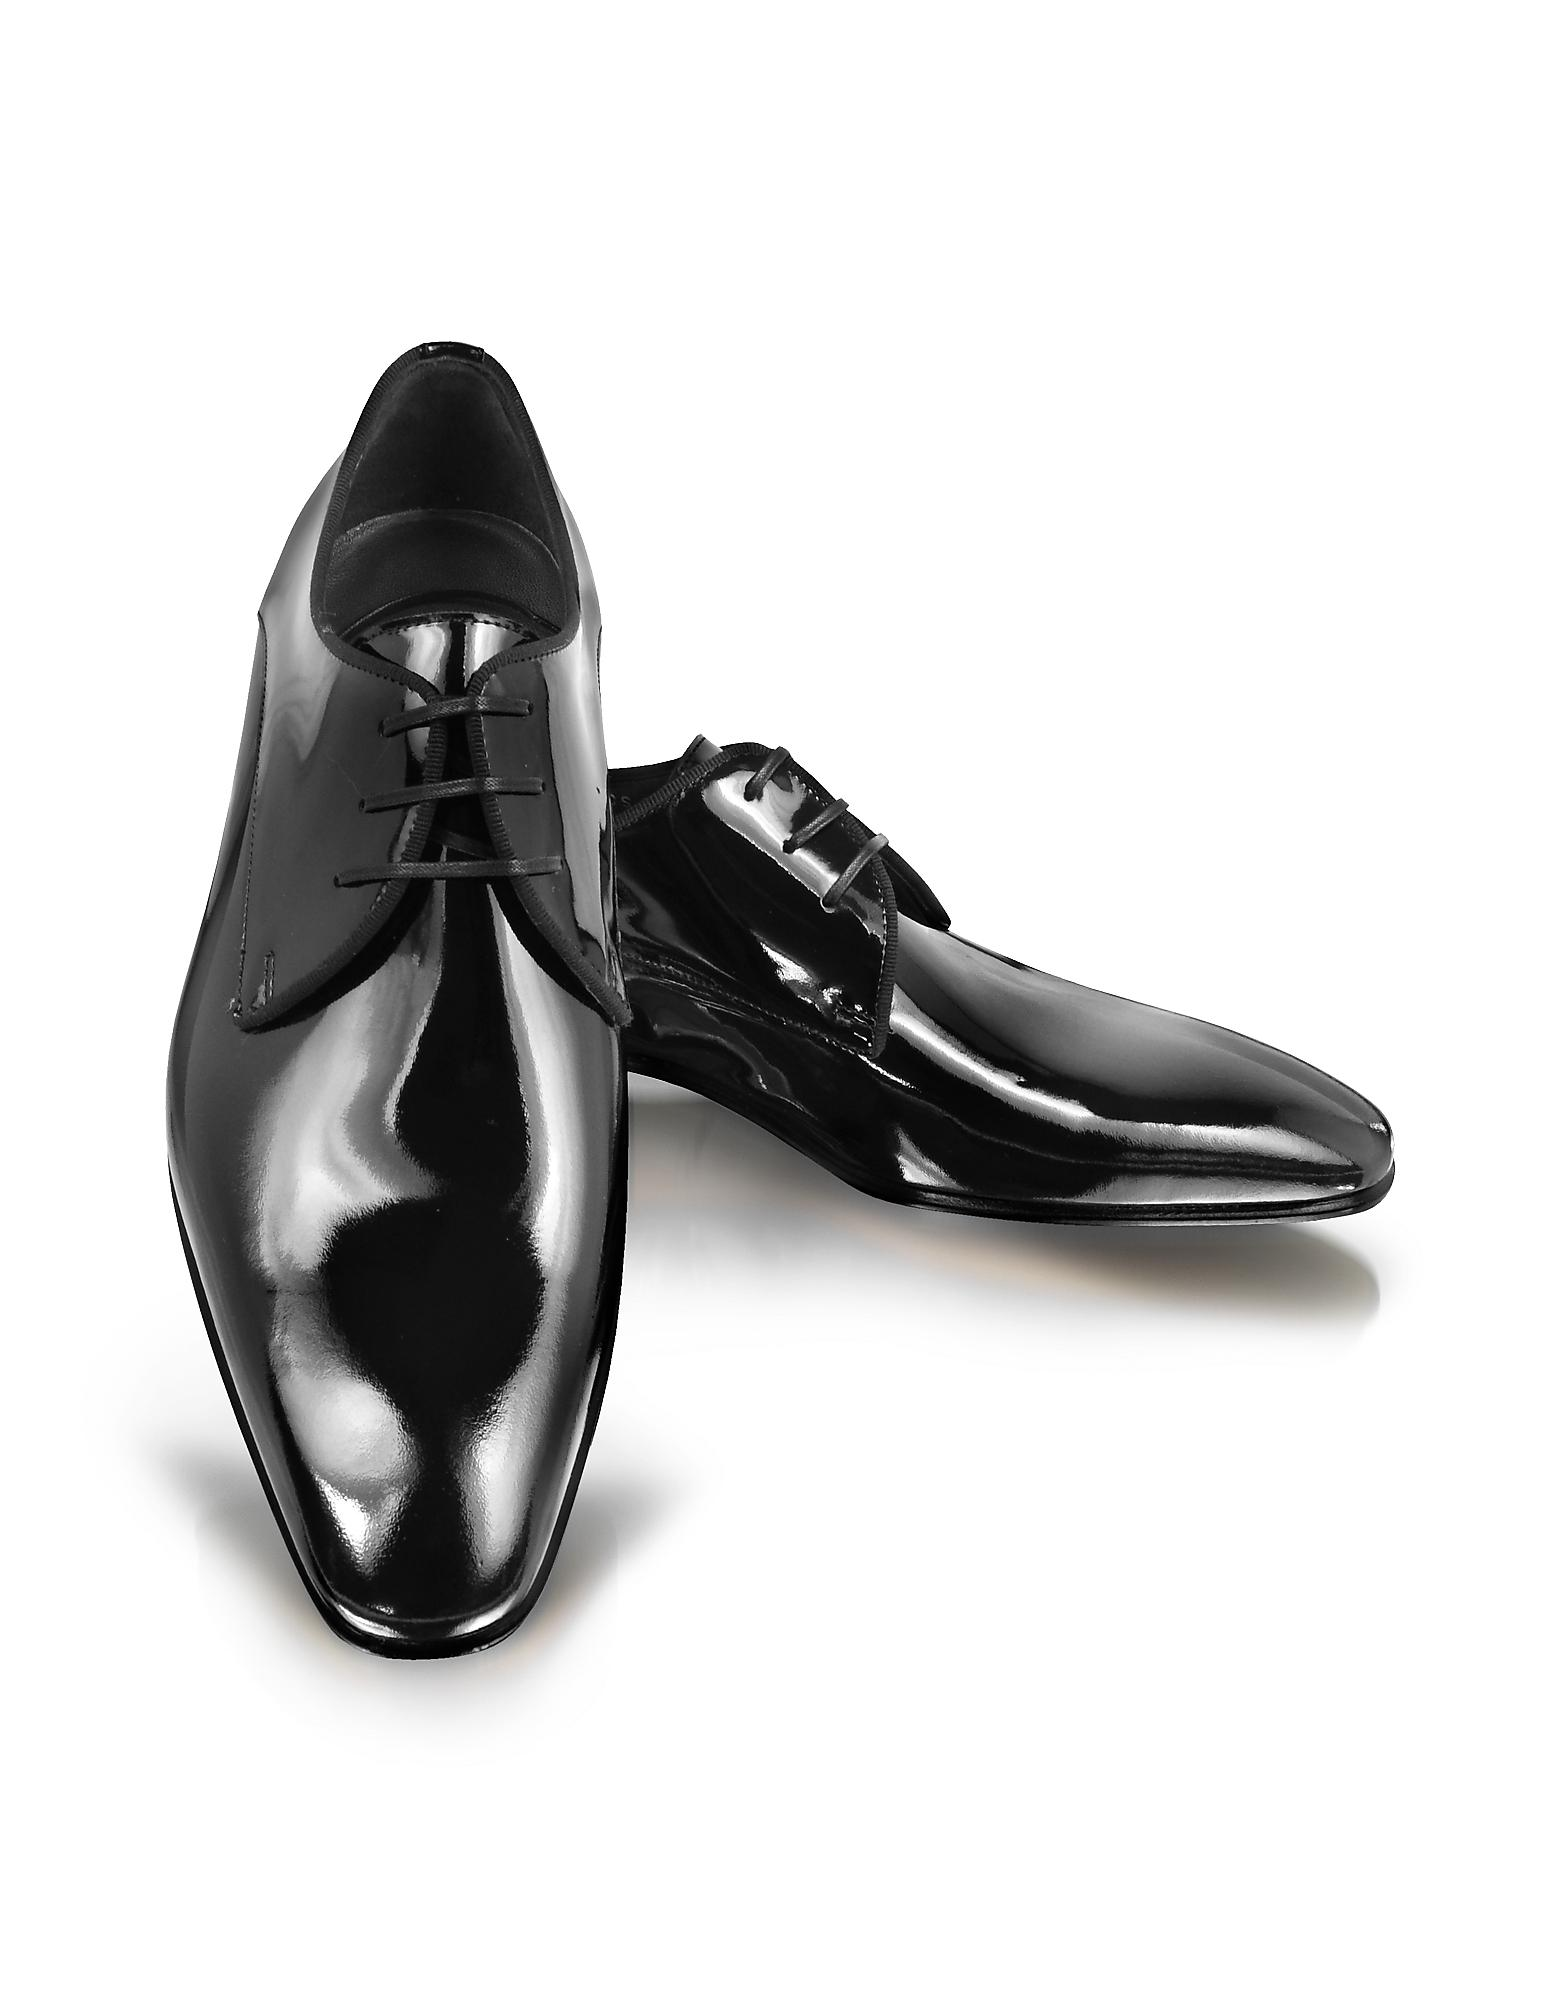 Clearance Store Outlet Derby patent leather black Moreschi Free Shipping Sast Ebay For Sale Pictures bvn5l